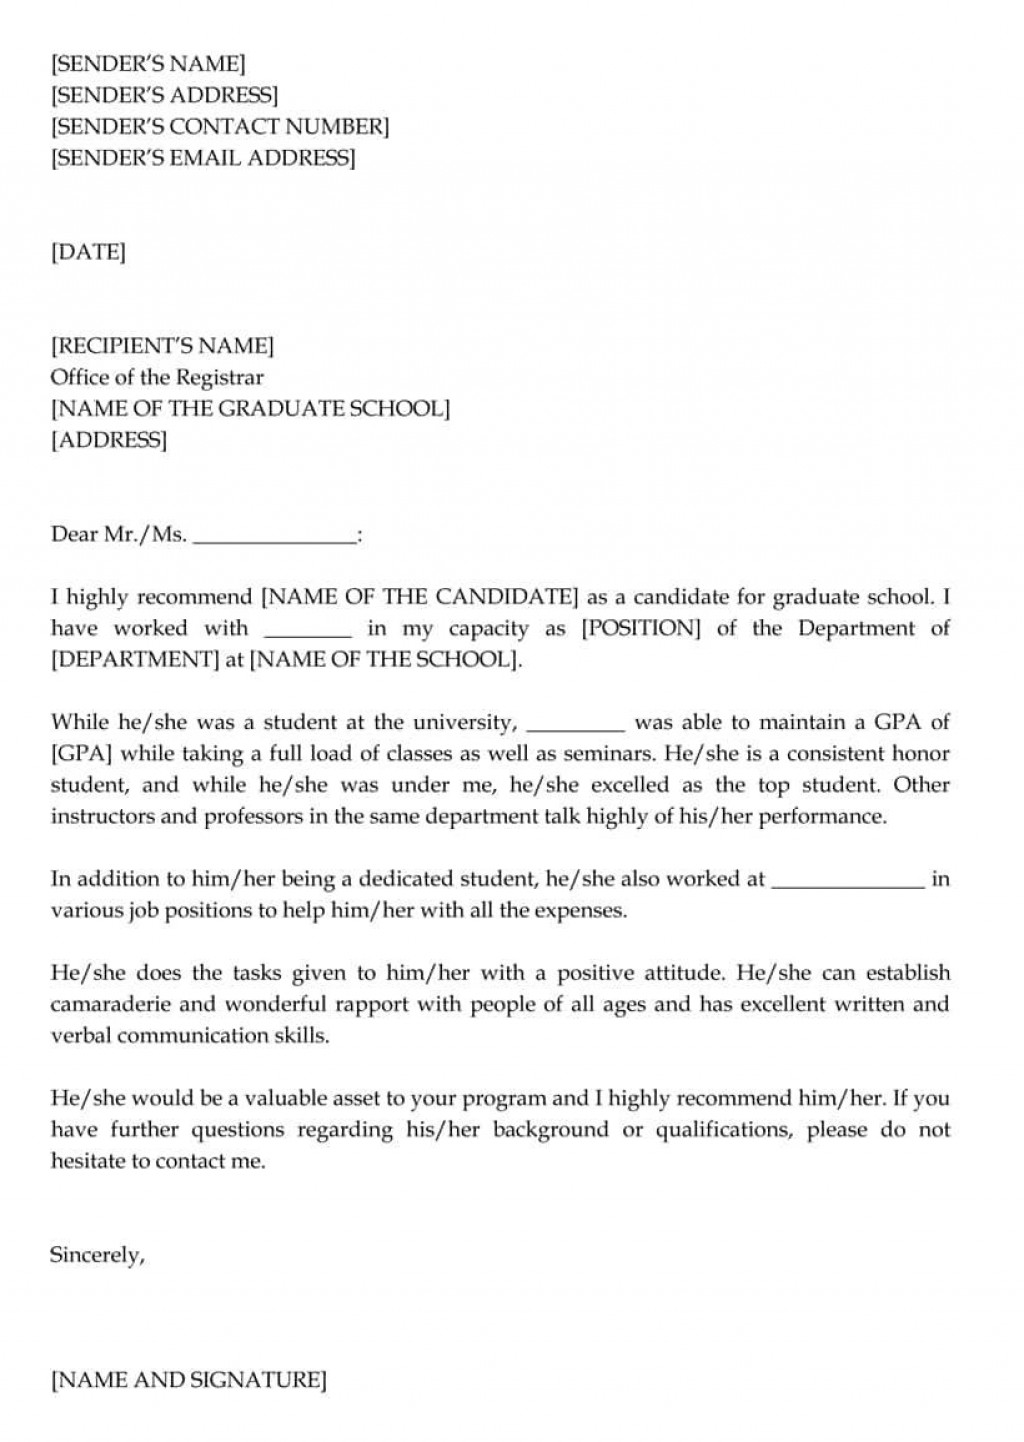 Sample Recommendation Letter For Student Going To College from www.addictionary.org